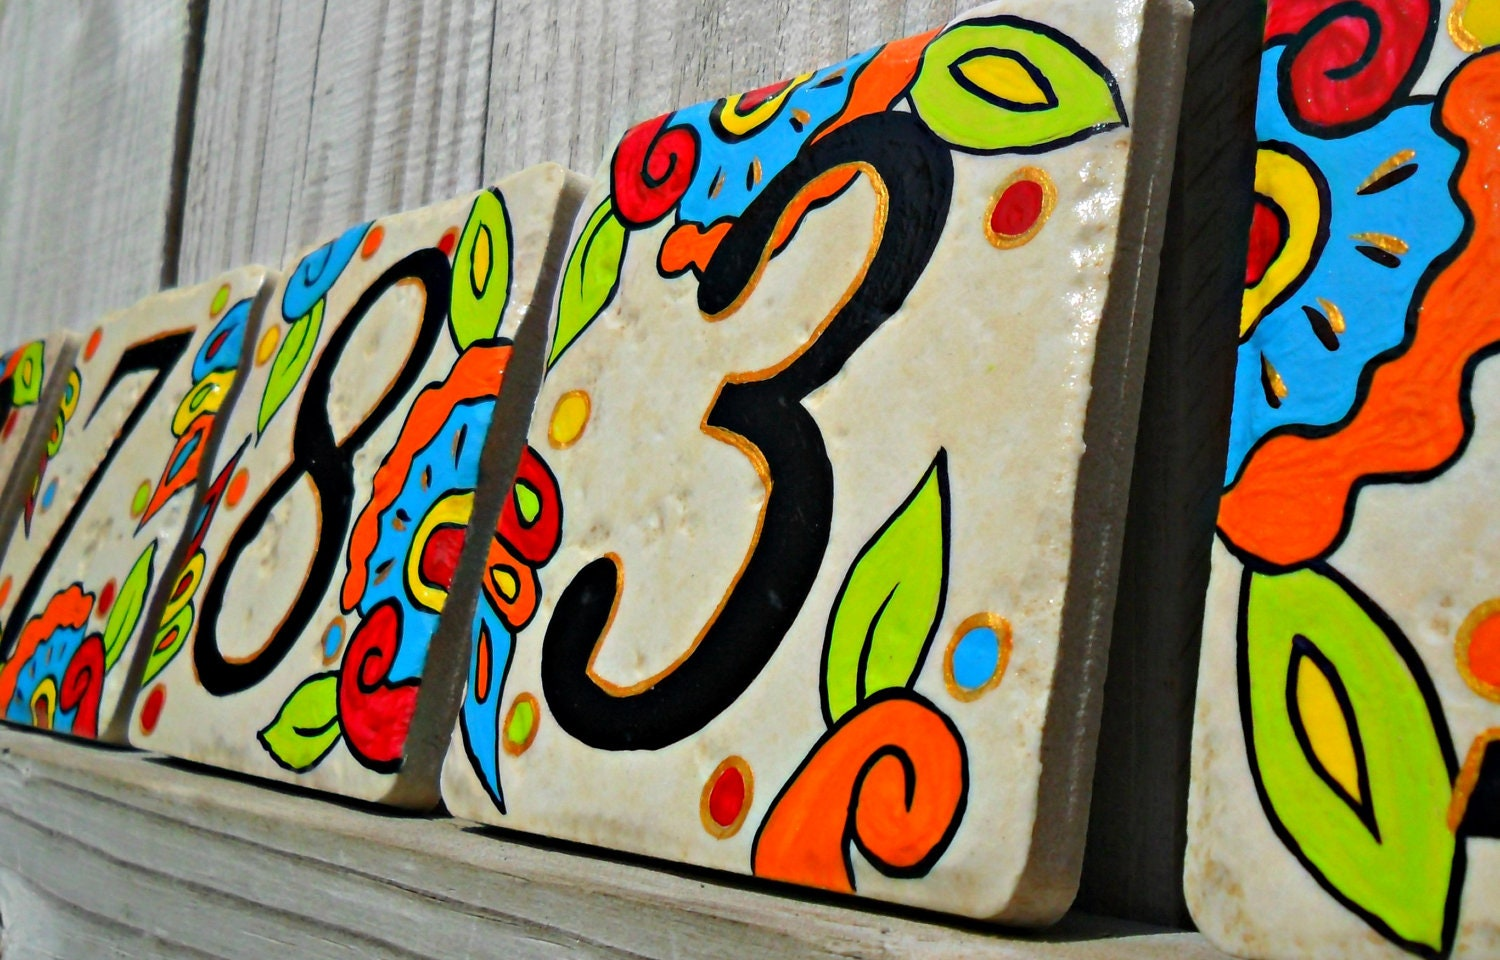 Painted house numbers address tiles spanish hand painted house numbers address tiles spanish dailygadgetfo Choice Image